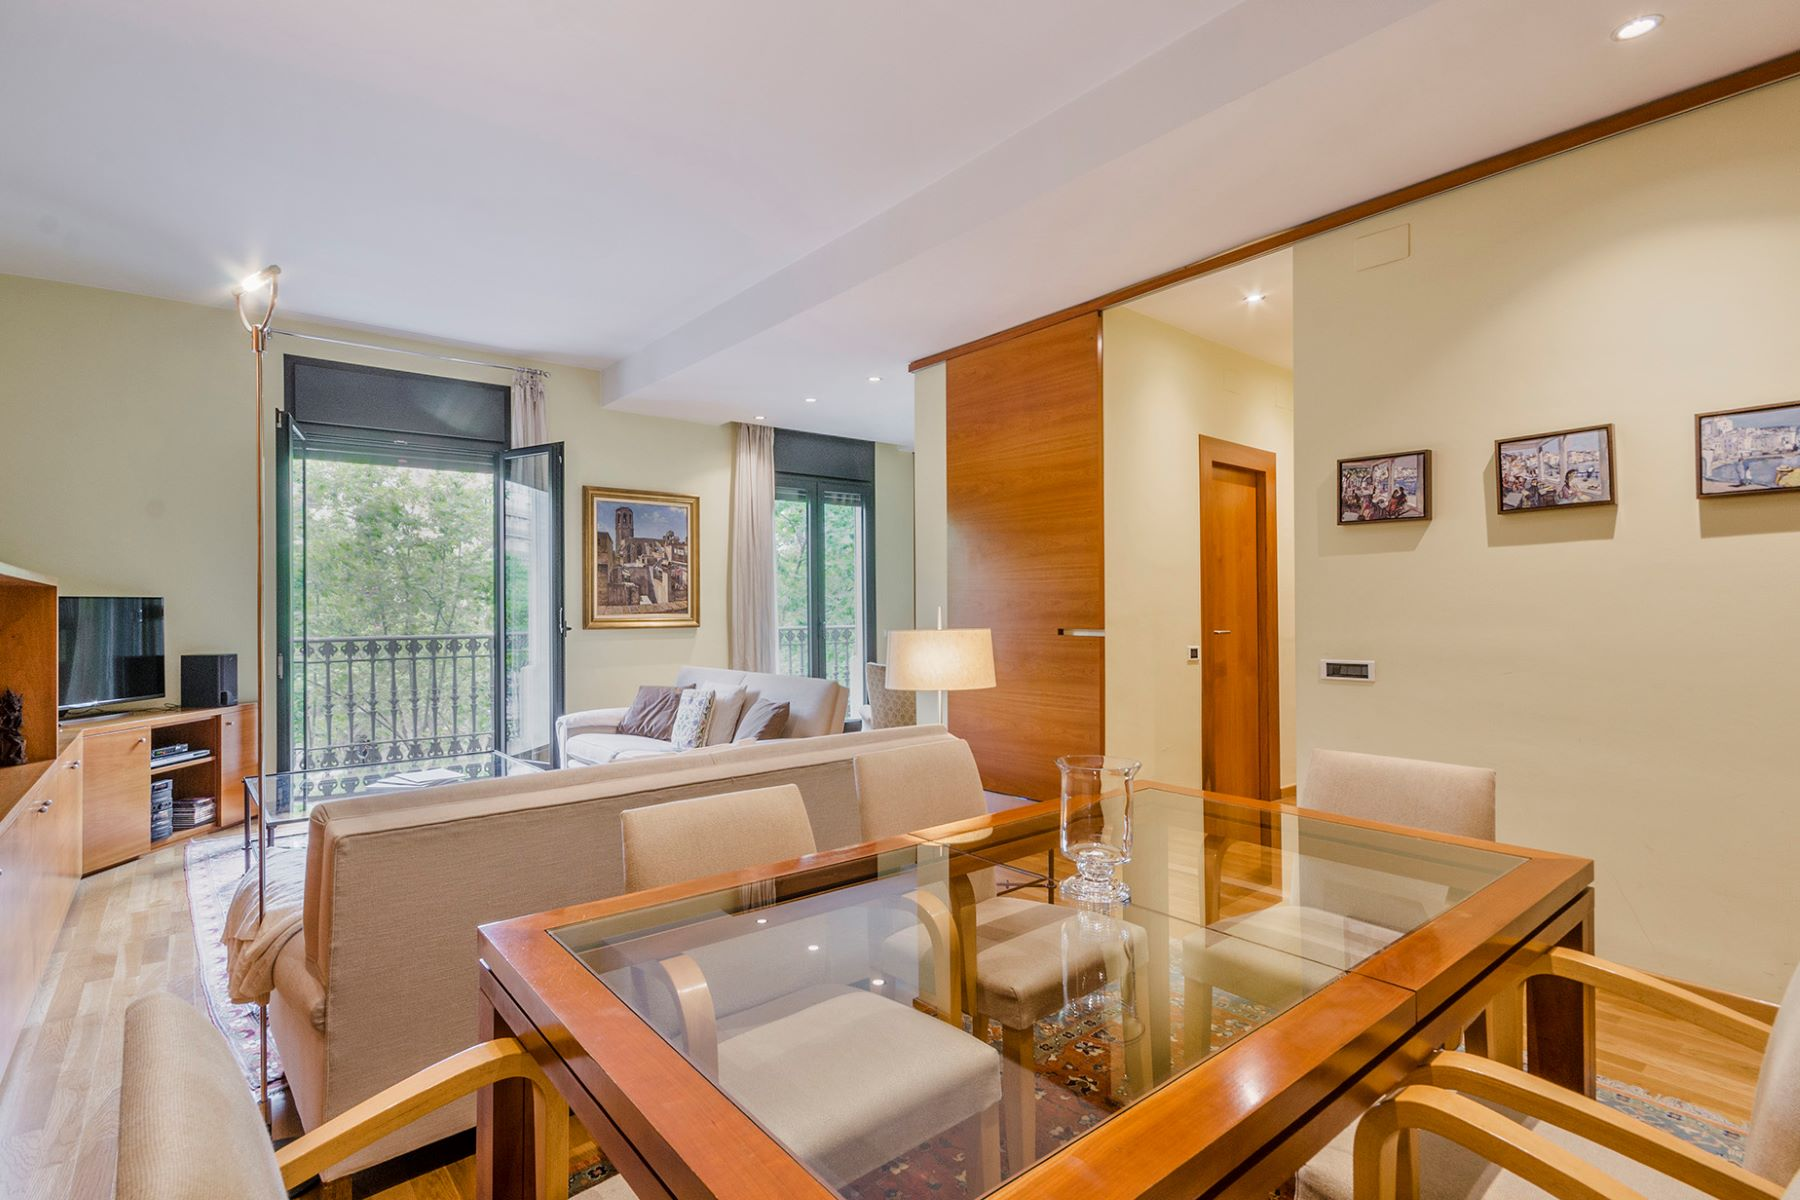 Apartment for Sale at Apartment in Paseo de Gracia with tourist license and parking Barcelona City, Barcelona, 08007 Spain